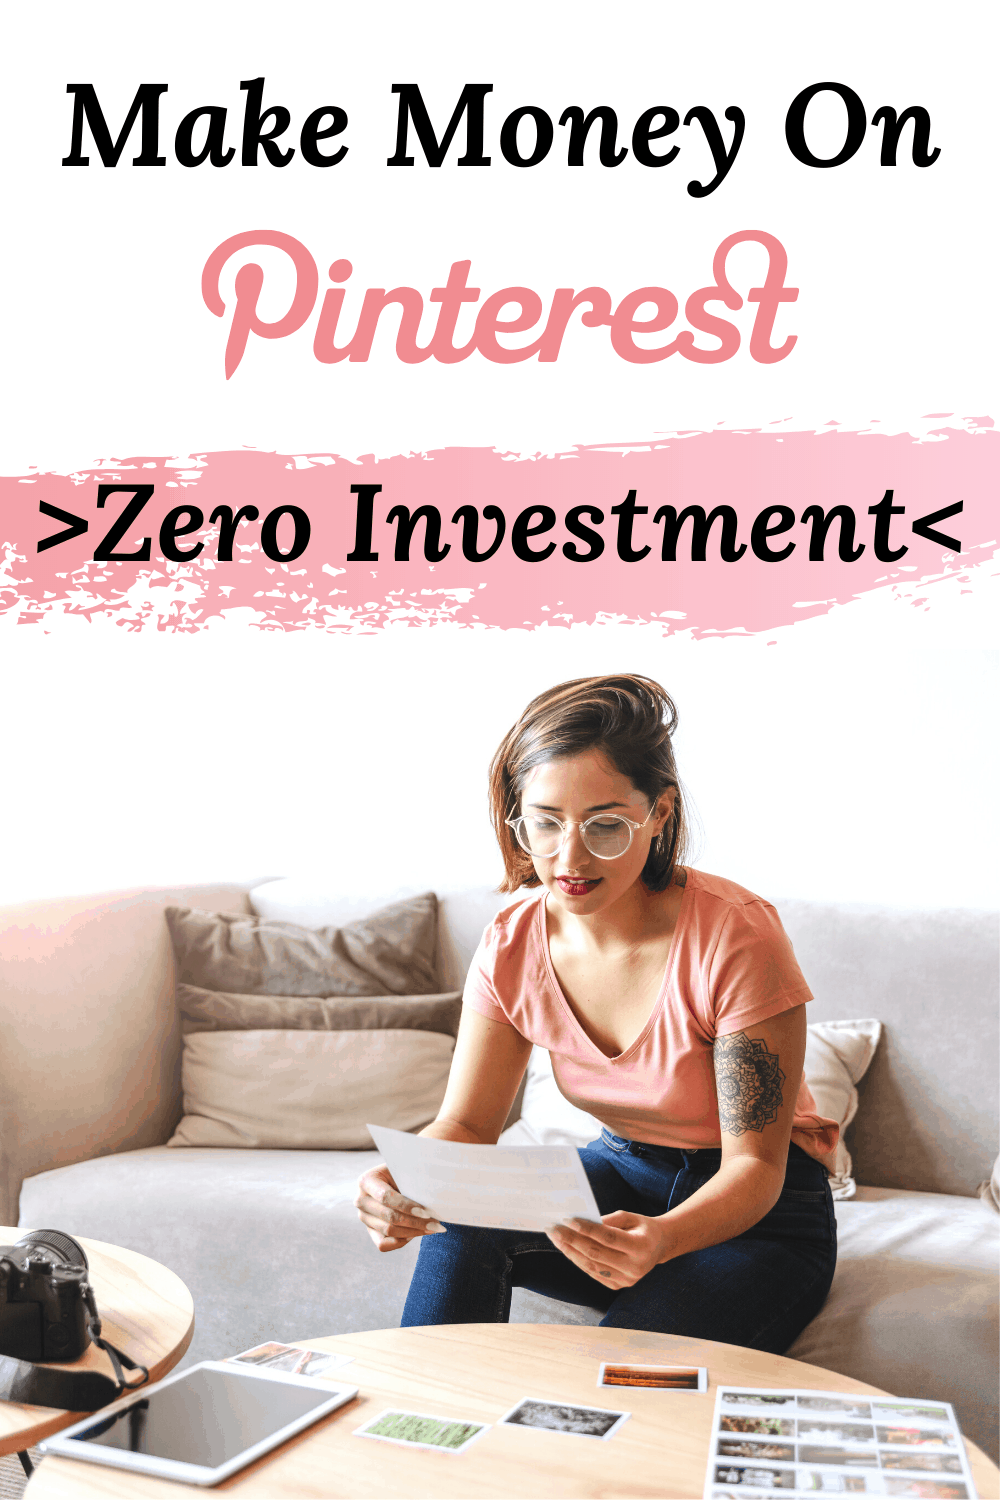 Make money on Pinterest with affiliate marketing. Learn how to use affiliate links to make money with or without a blog. Make money online